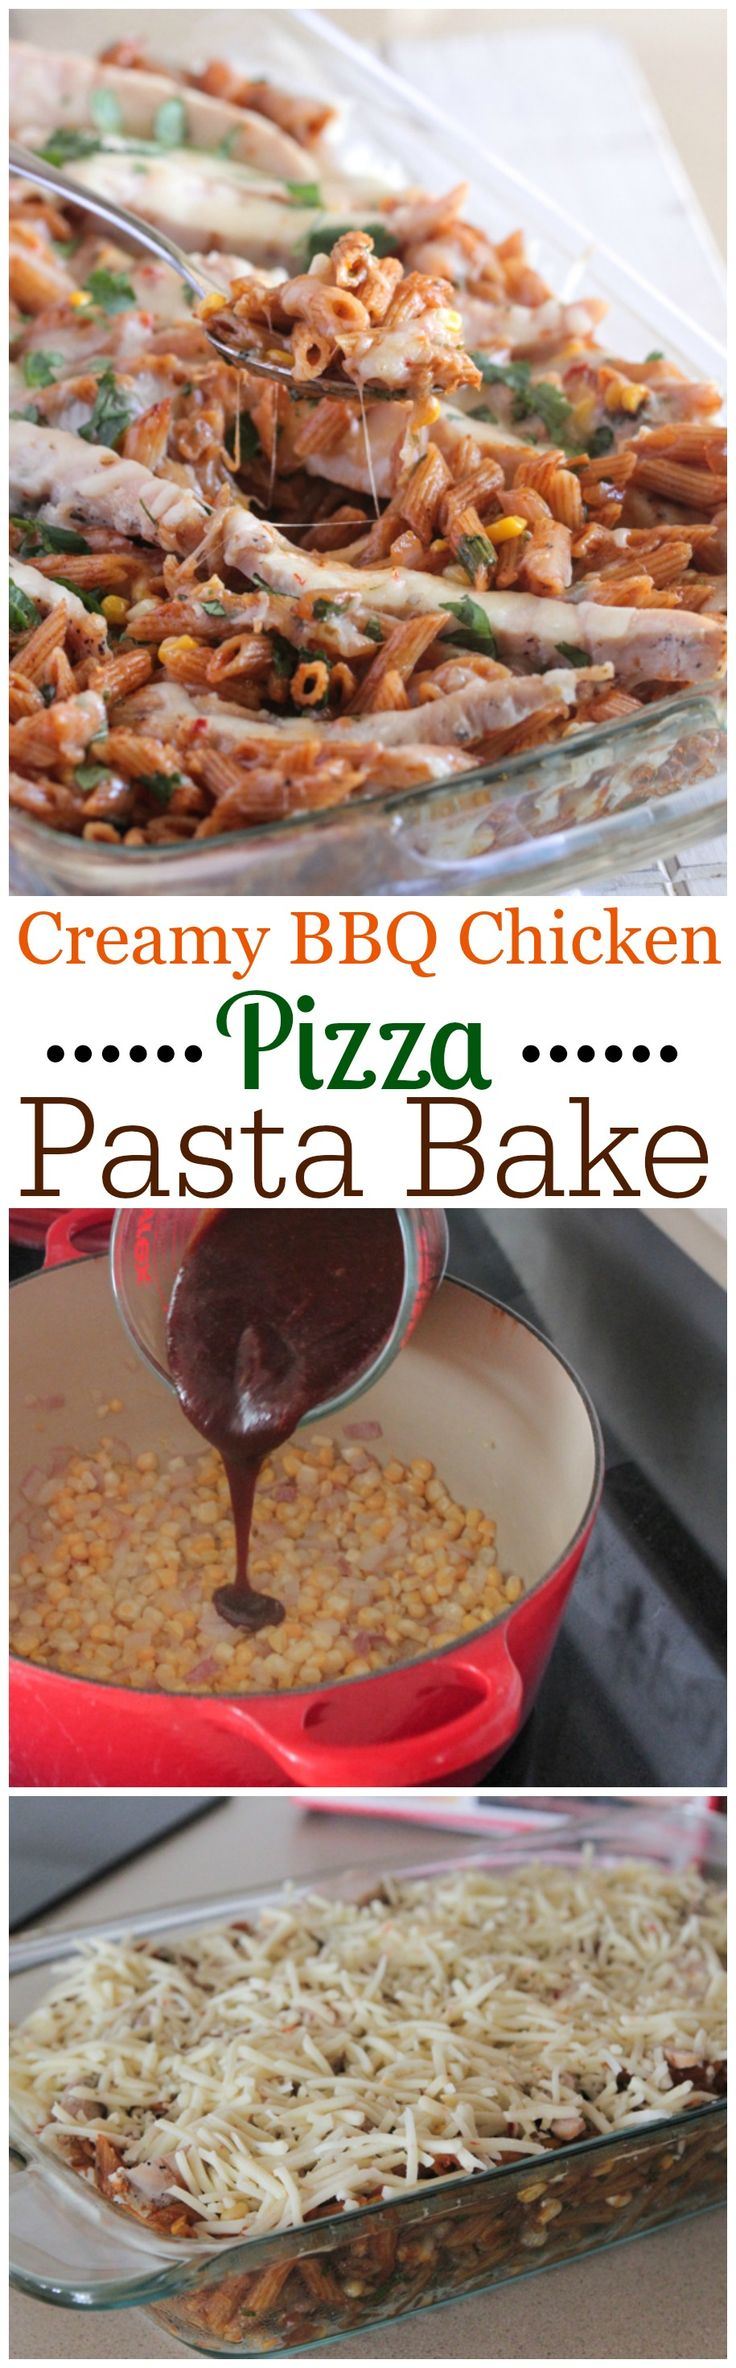 Creamy BBQ Chicken Pizza Pasta Bake!  Simple weeknight dinner the whole family enjoys....plus only takes 30 minutes from start to finish! #chicken #dinner #pasta #recipe